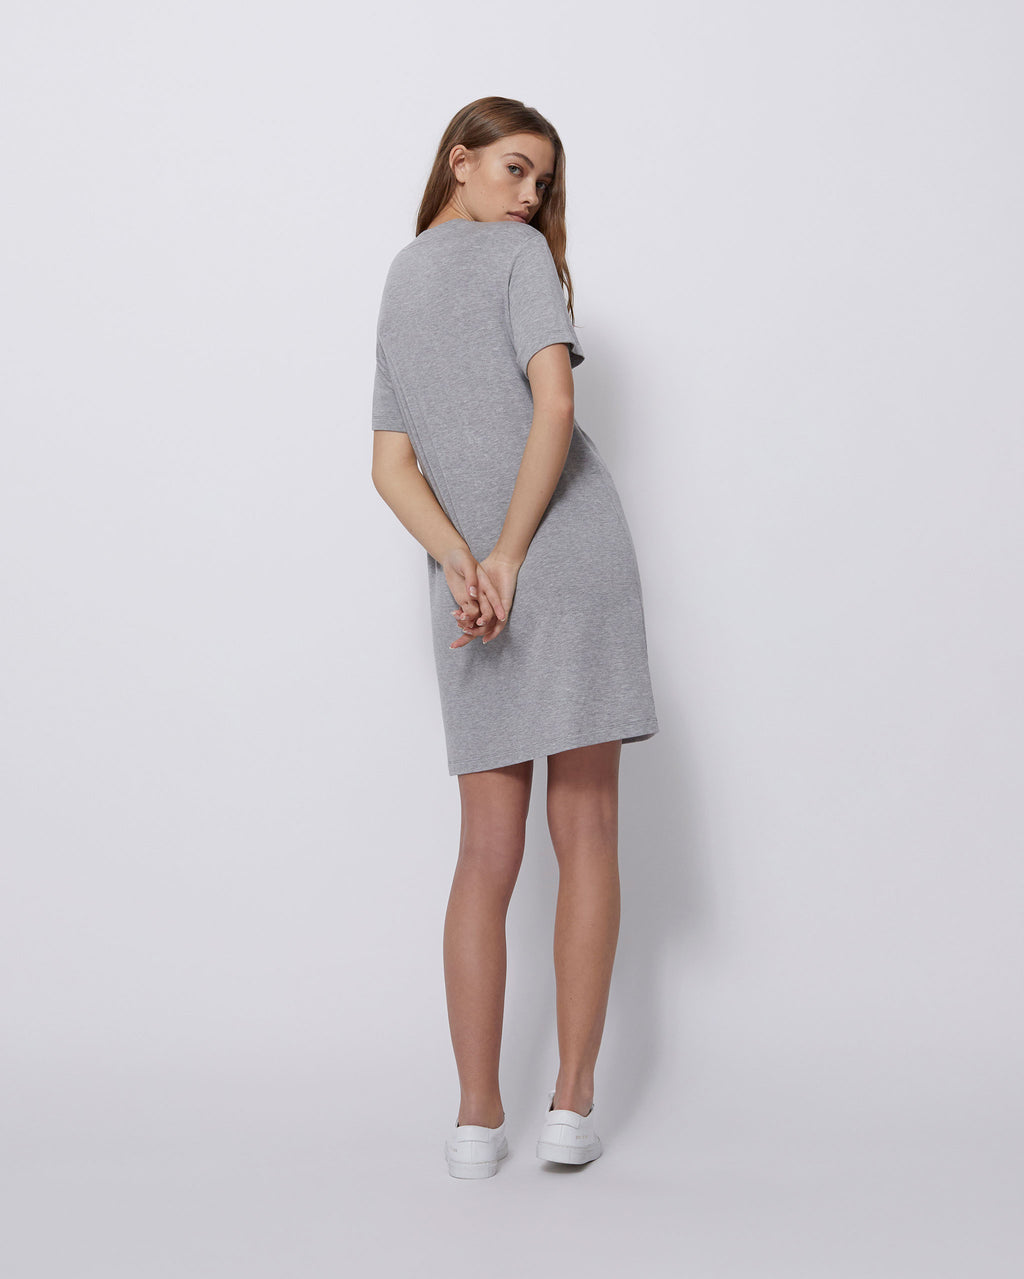 The Leah Dress in Heather Grey